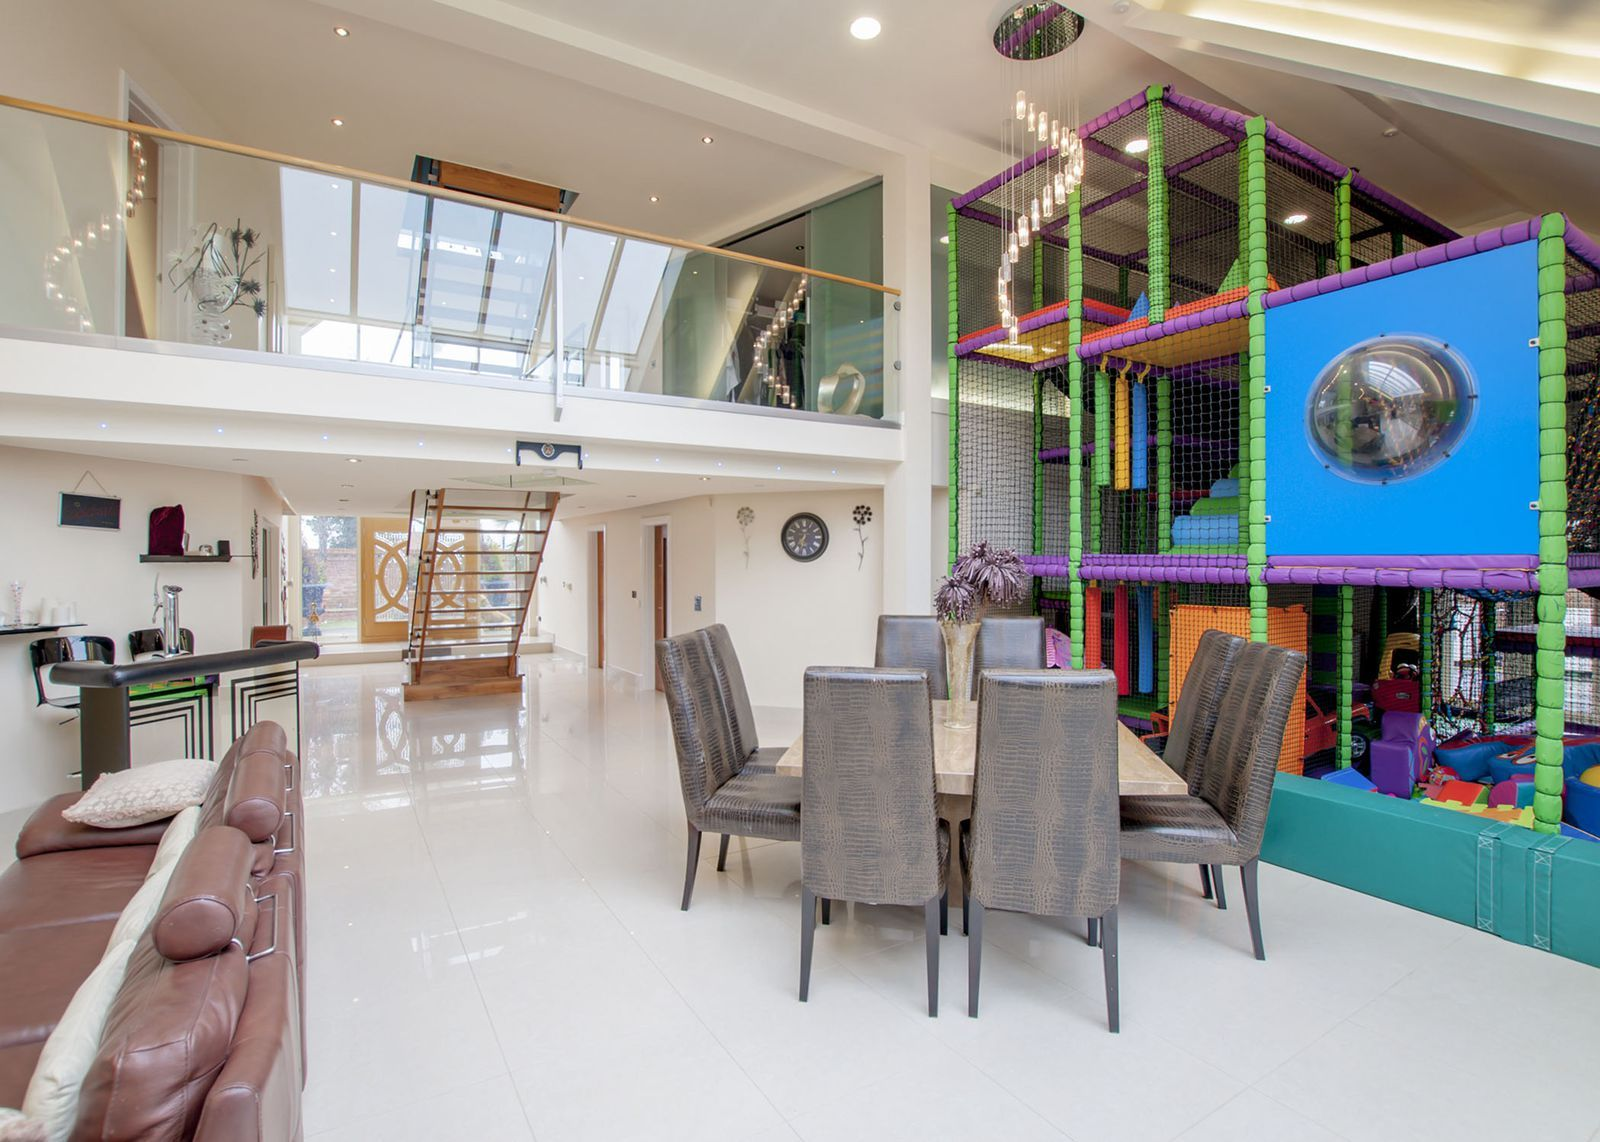 Take A Look Inside Zoopla S Most Viewed Property For March